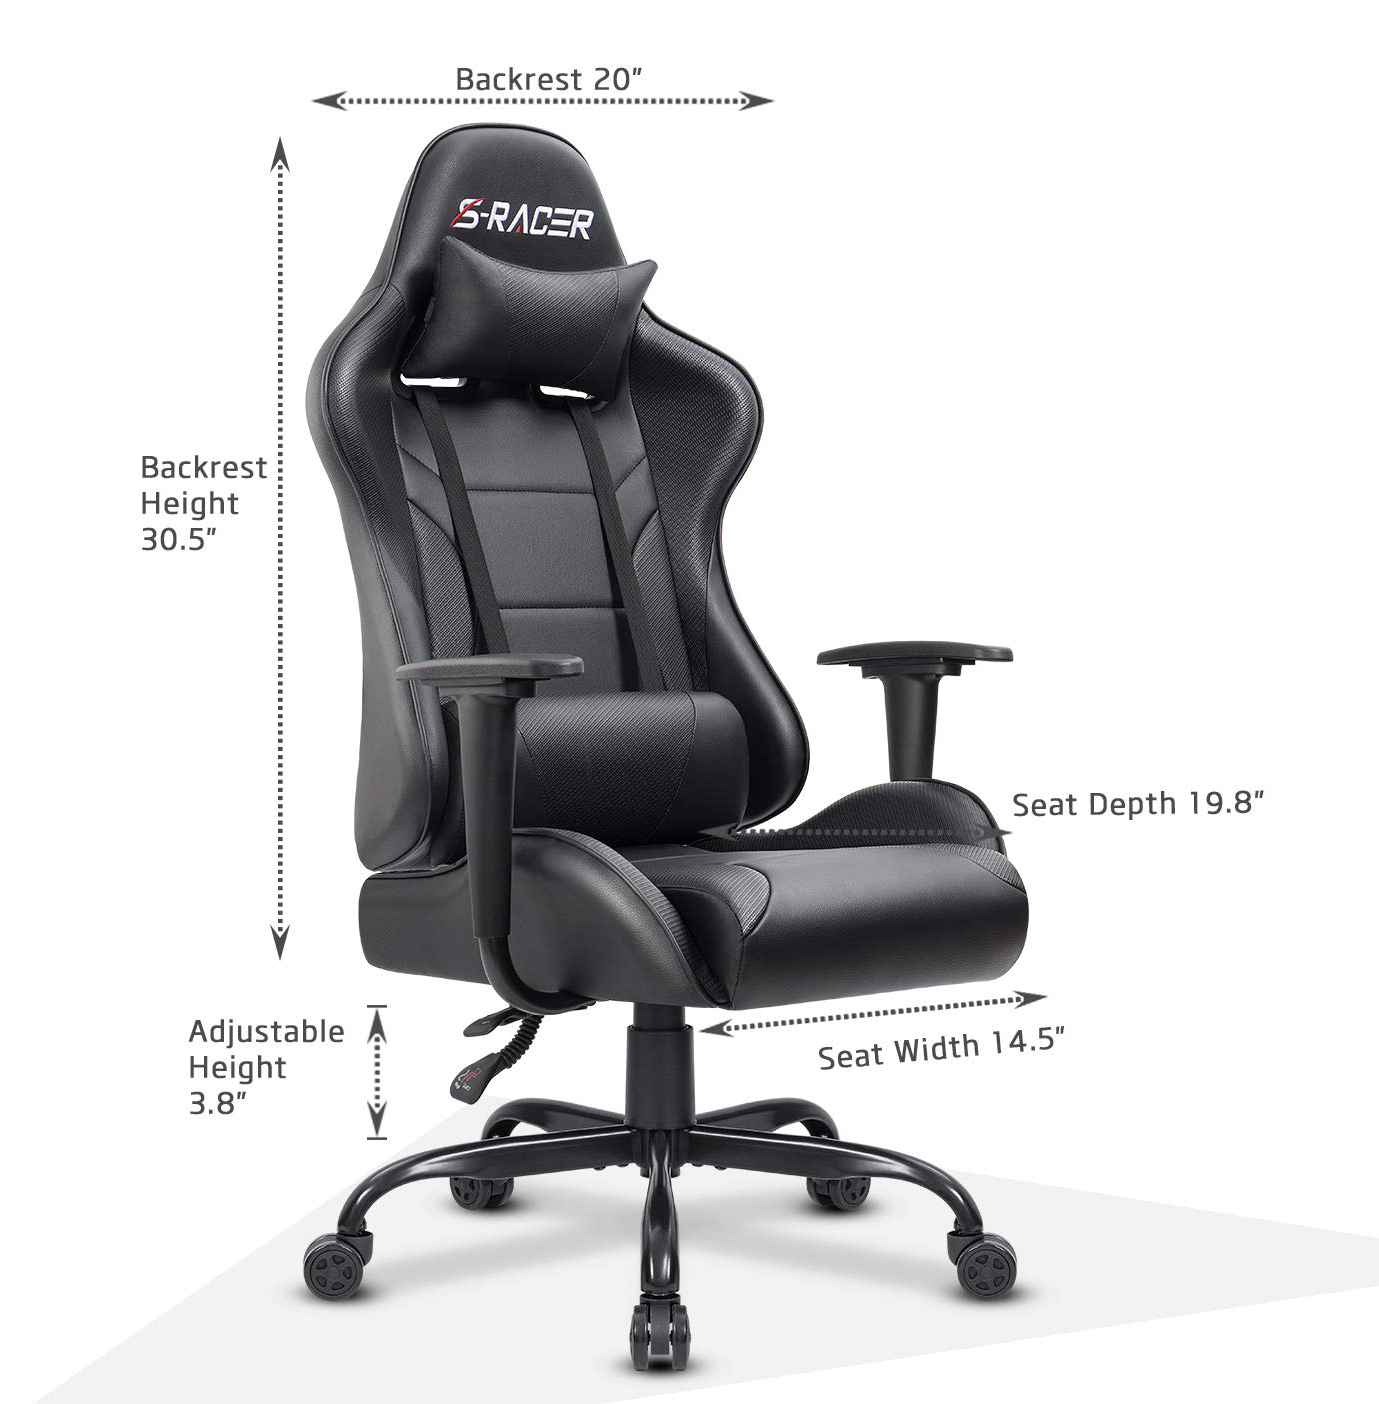 Cloud 9 Gaming Chair Homall Office Gaming Chair Carbon Pu Leather Reclining Black Racing Style Executive Ergonomic Hydraulic Swivel Seat With Headrest And Lumbar Support